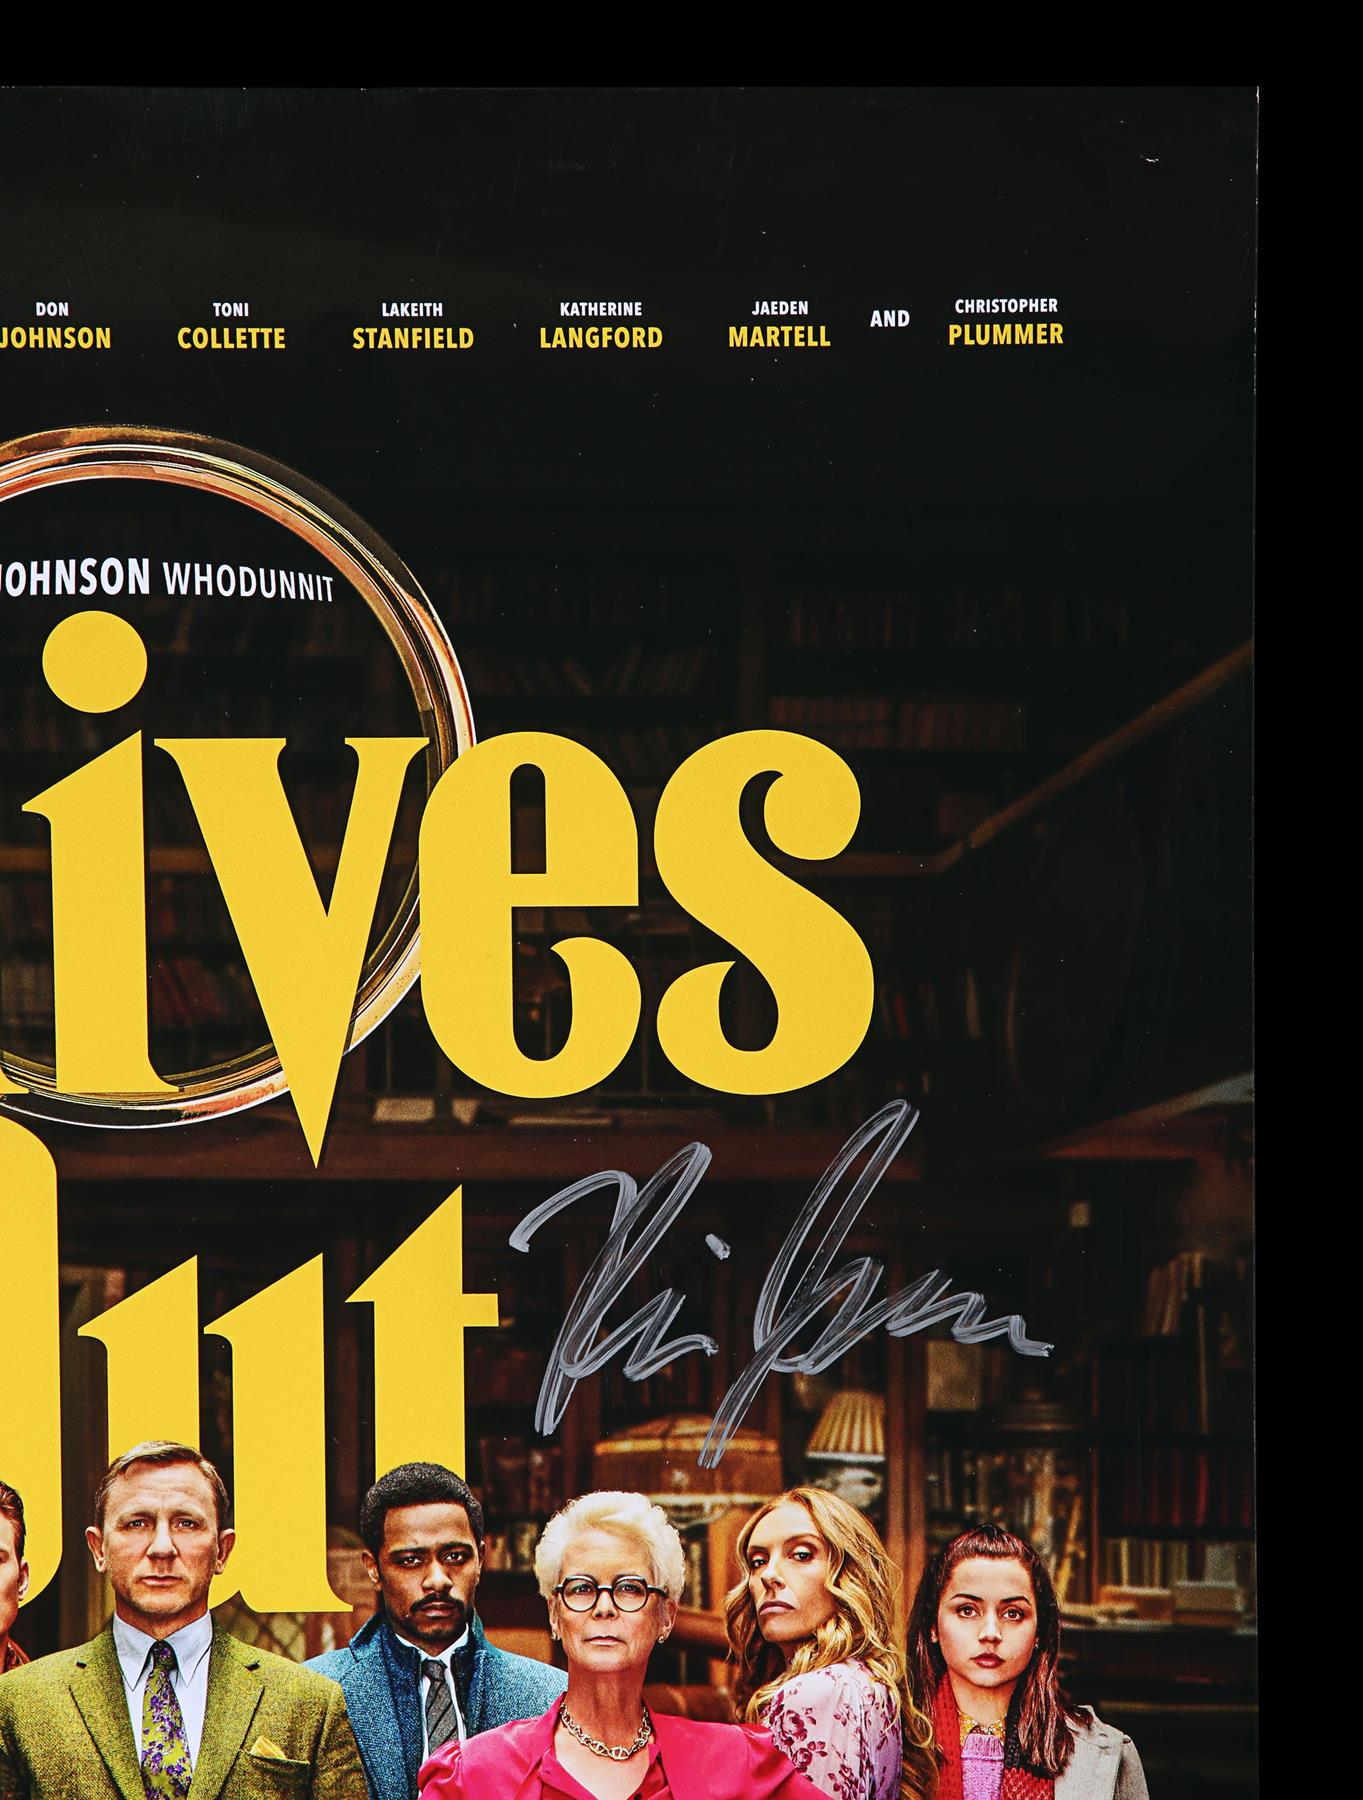 KNIVES OUT (2019) - Poster, 2019, Autographed by Daniel Craig, Chris Evans and Others - Image 3 of 7